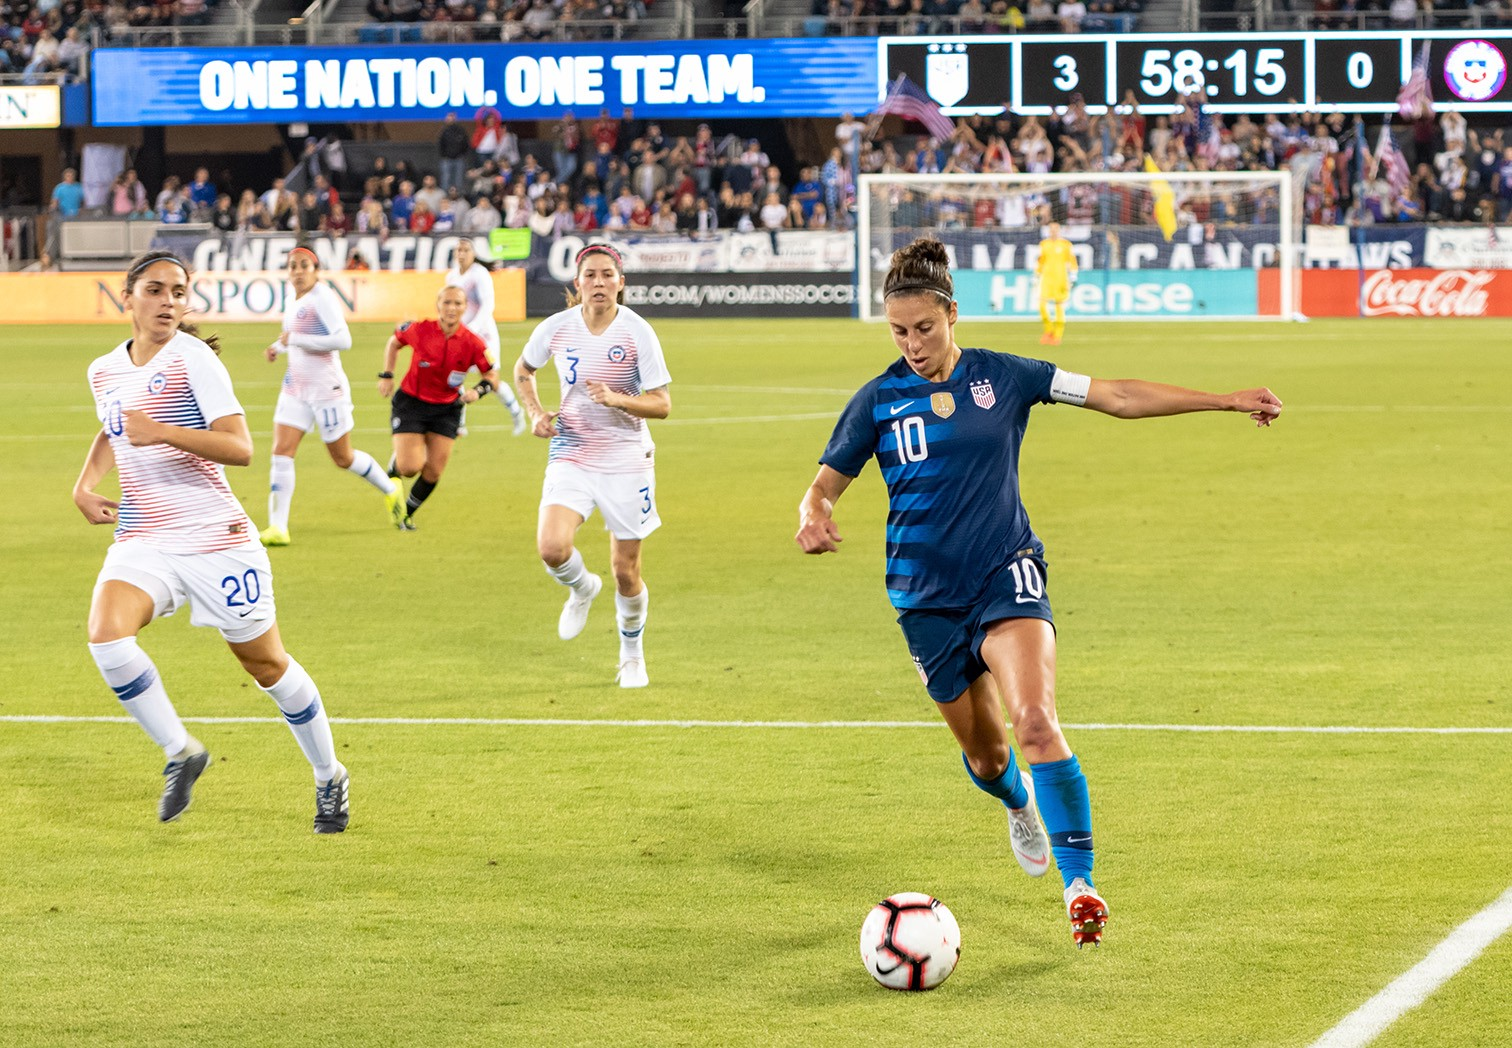 Photos: The U S  women's soccer team stays hot in San Jose